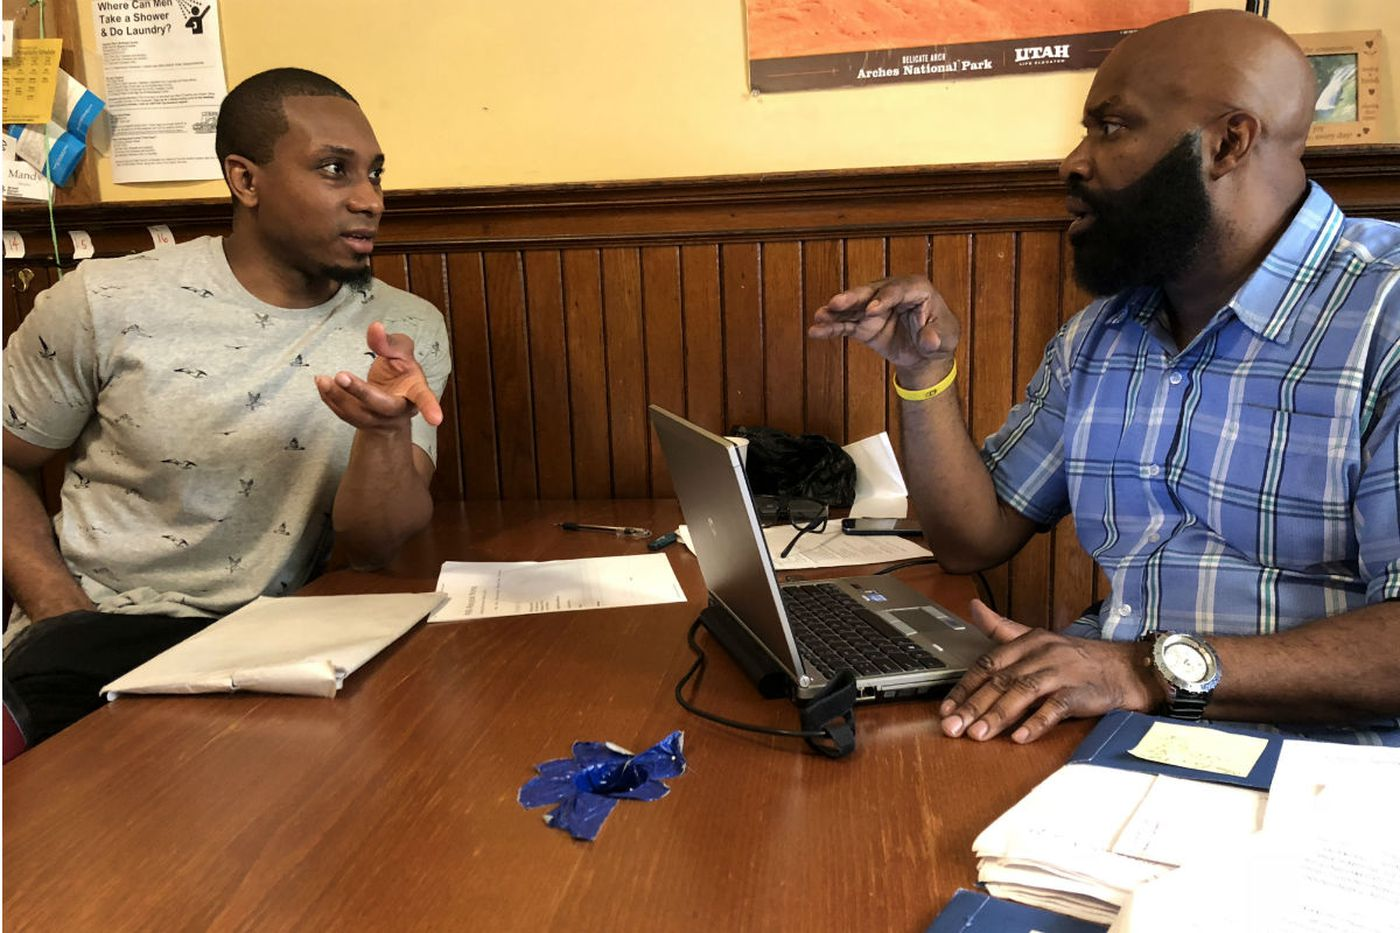 After 14 years in prison, ex-offender fills out his first resume — and hopes